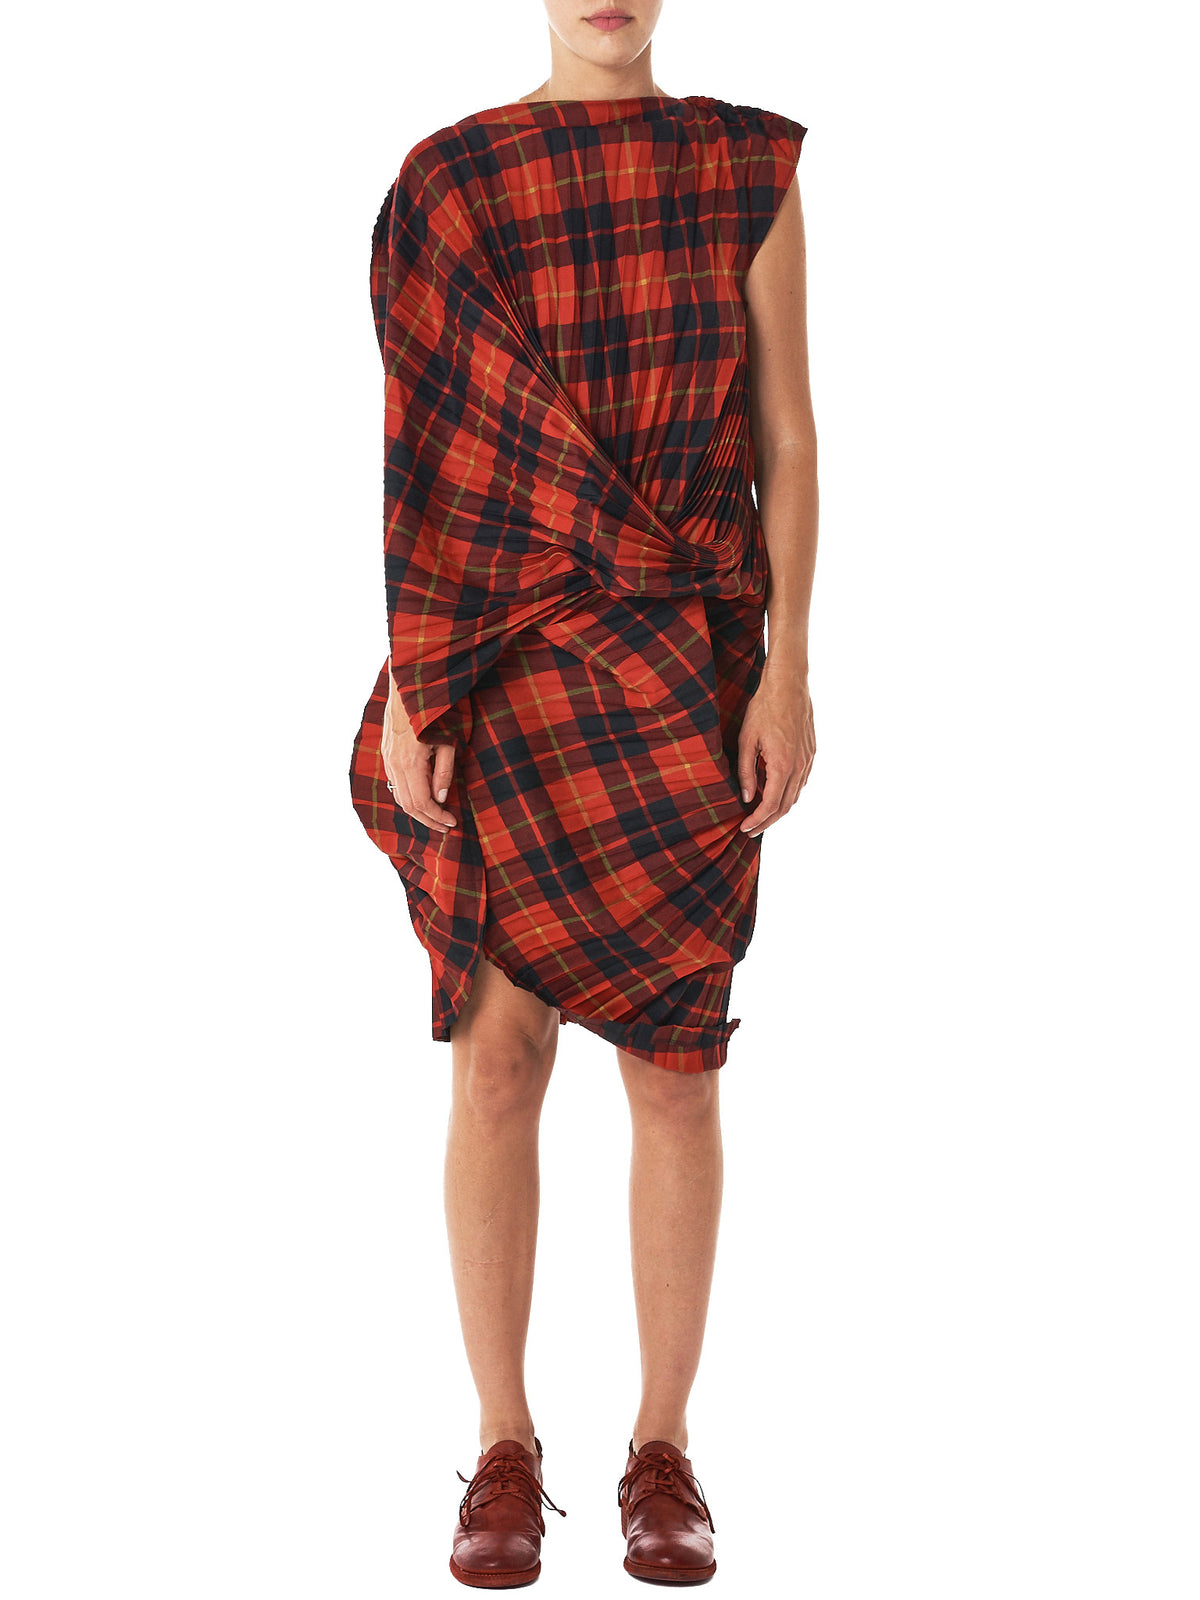 Pleated Plaid Dress (JT-O004-051-2)